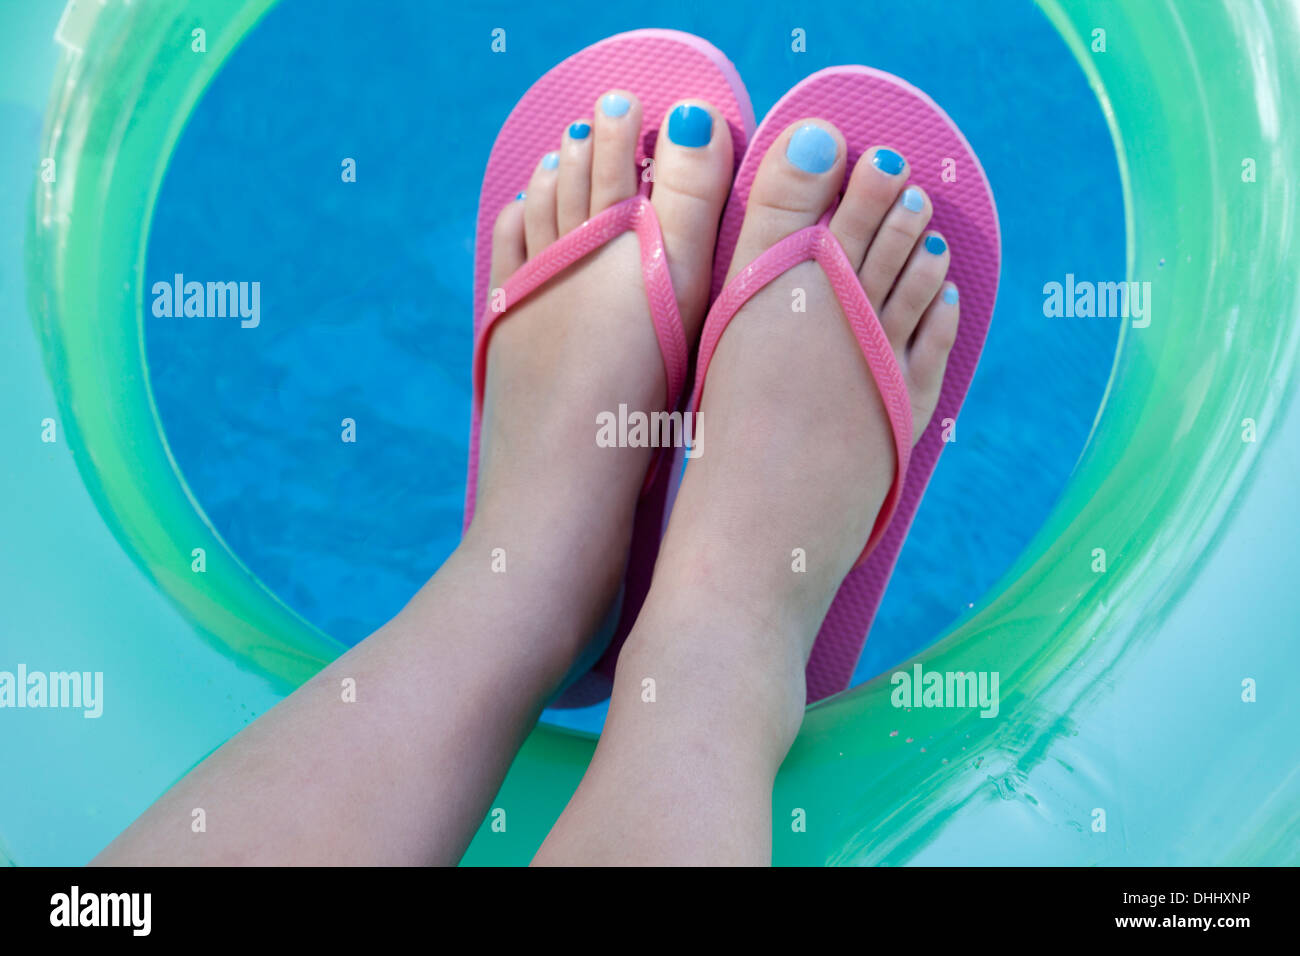 Overhead view of feet with colored nails - Stock Image